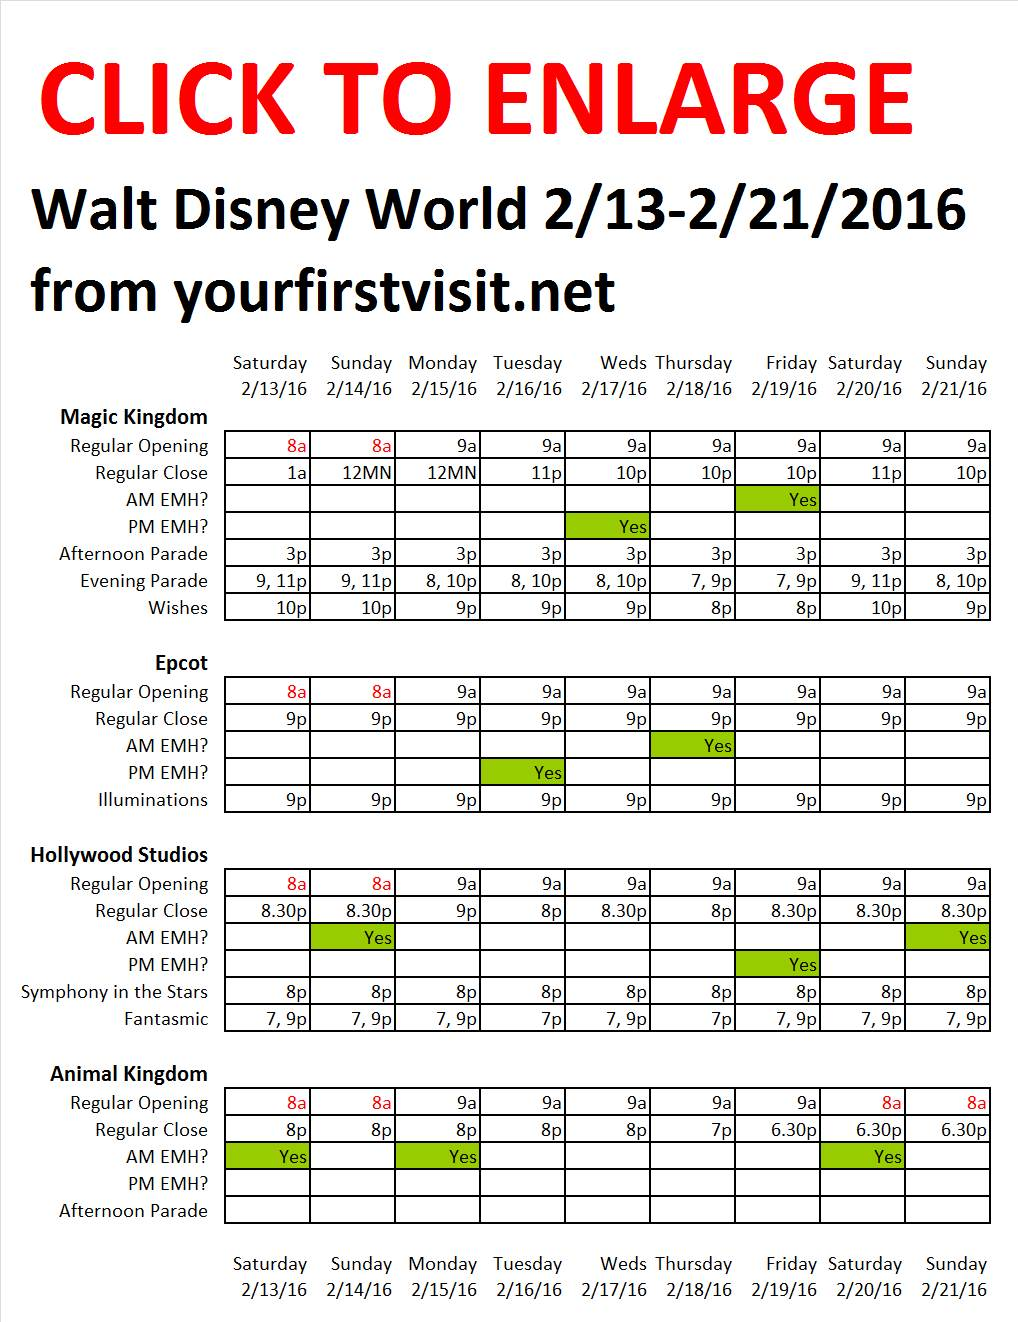 Disney World 2-13 to 2-21-2016 from yourfirstvisit.net